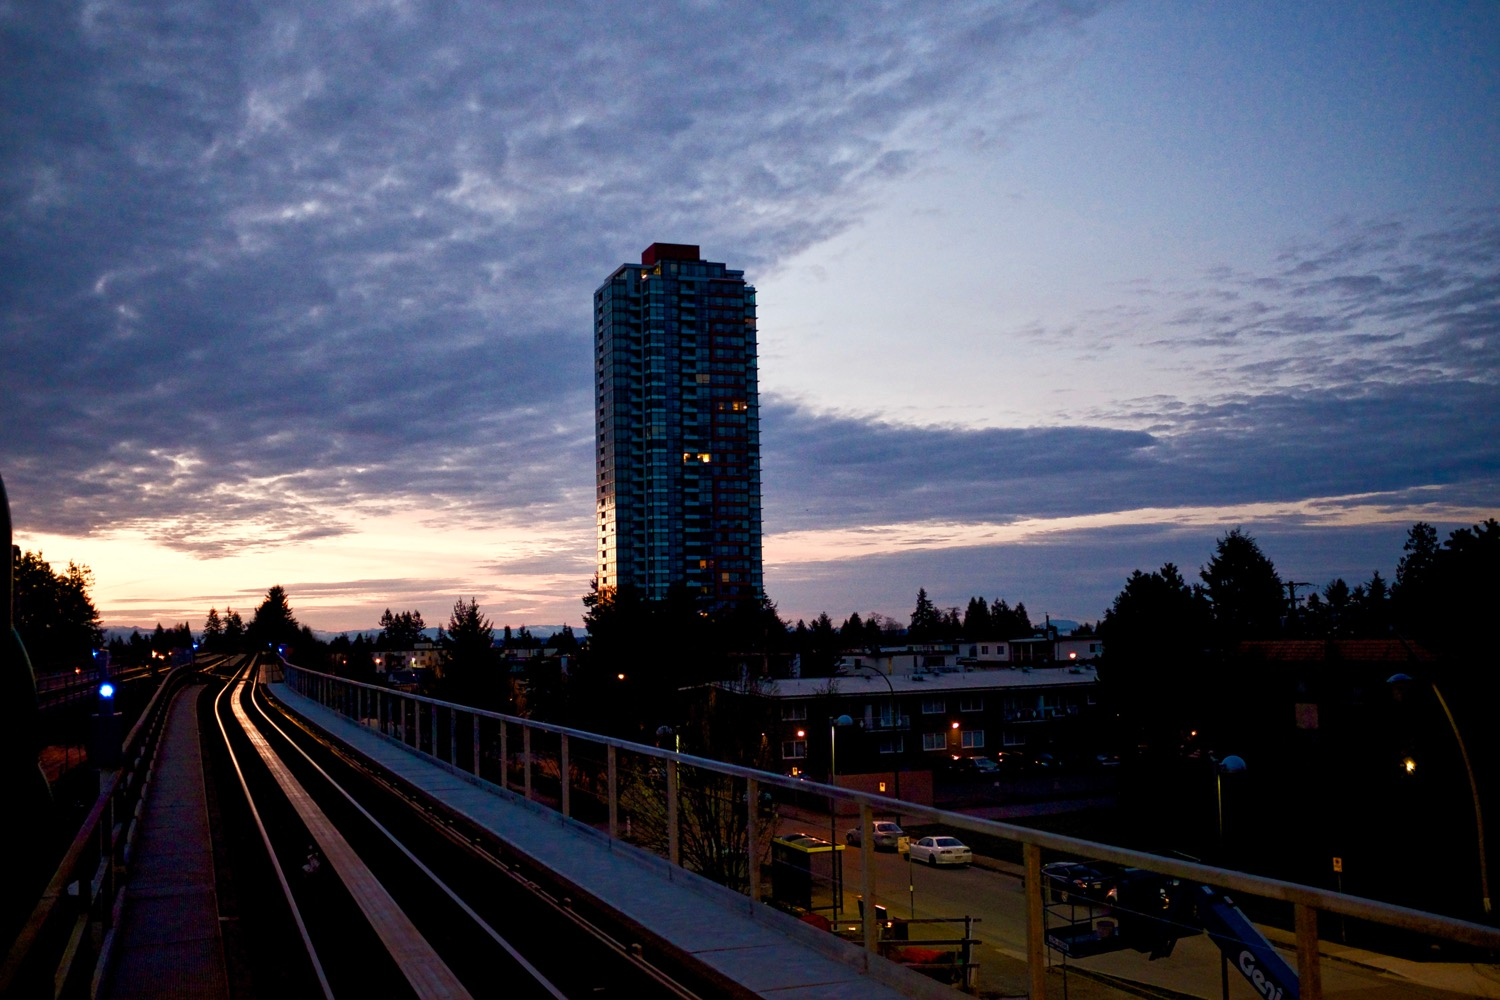 Metrotown Morning - Burnaby, BC  Click image to enlarge.